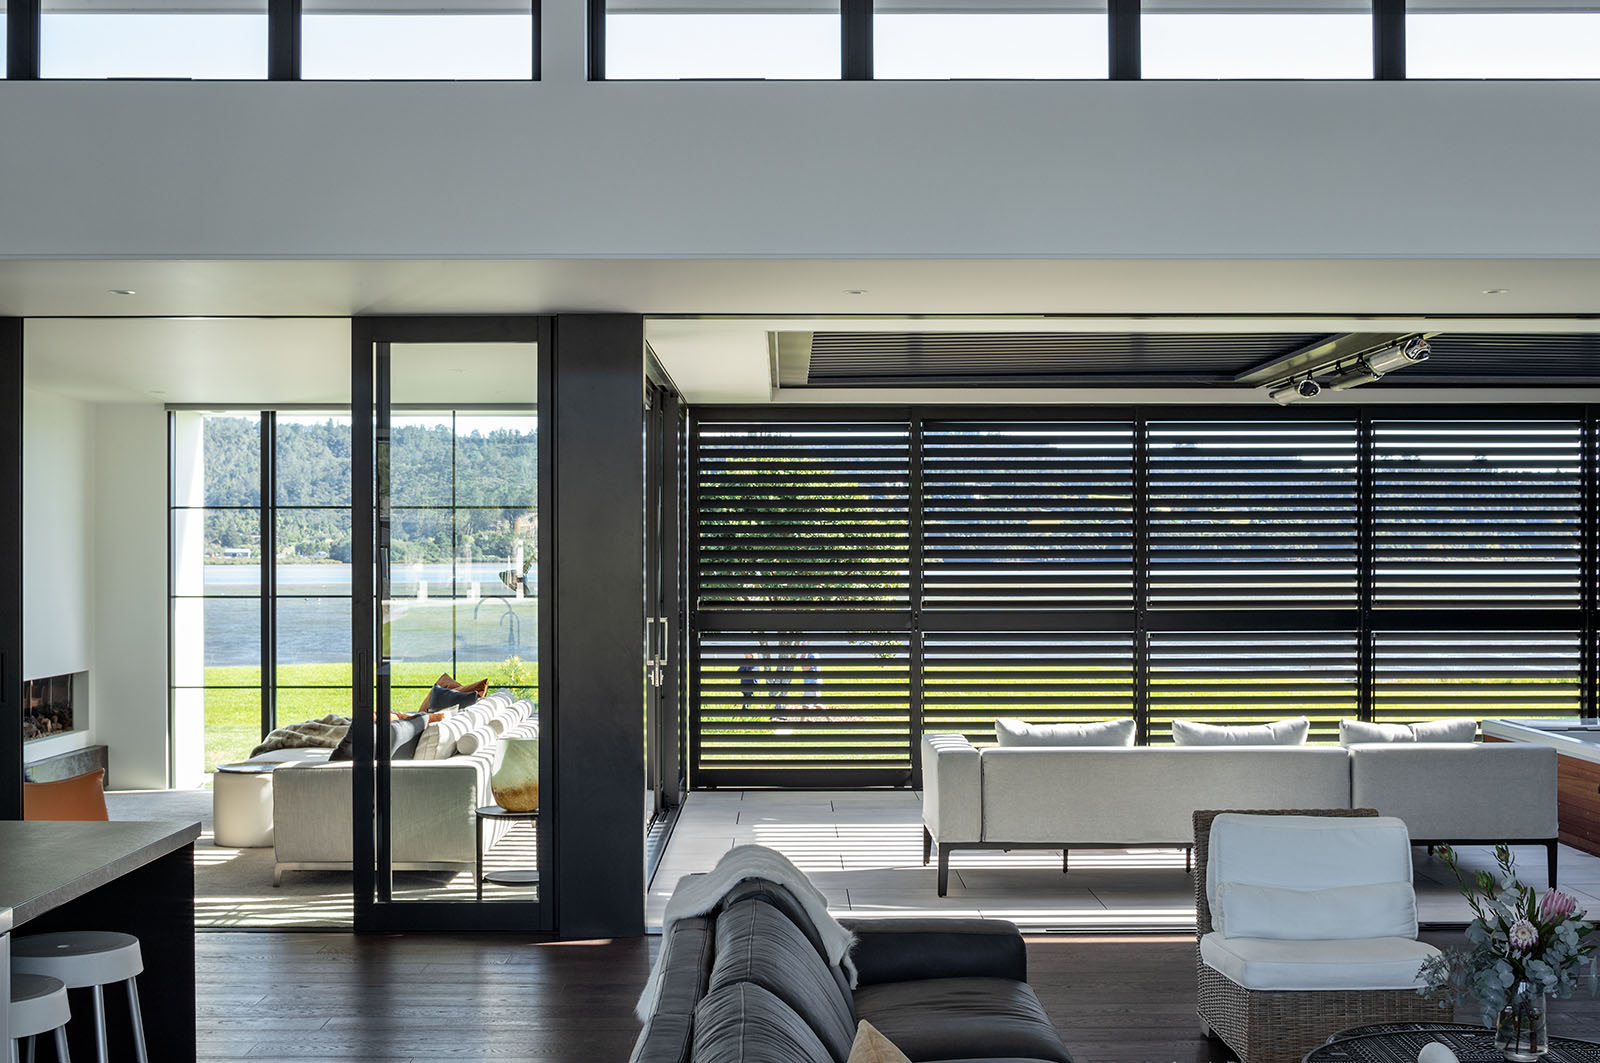 Home completed by local Tauranga / Mount Maunganui builders - 90 Degrees Construction